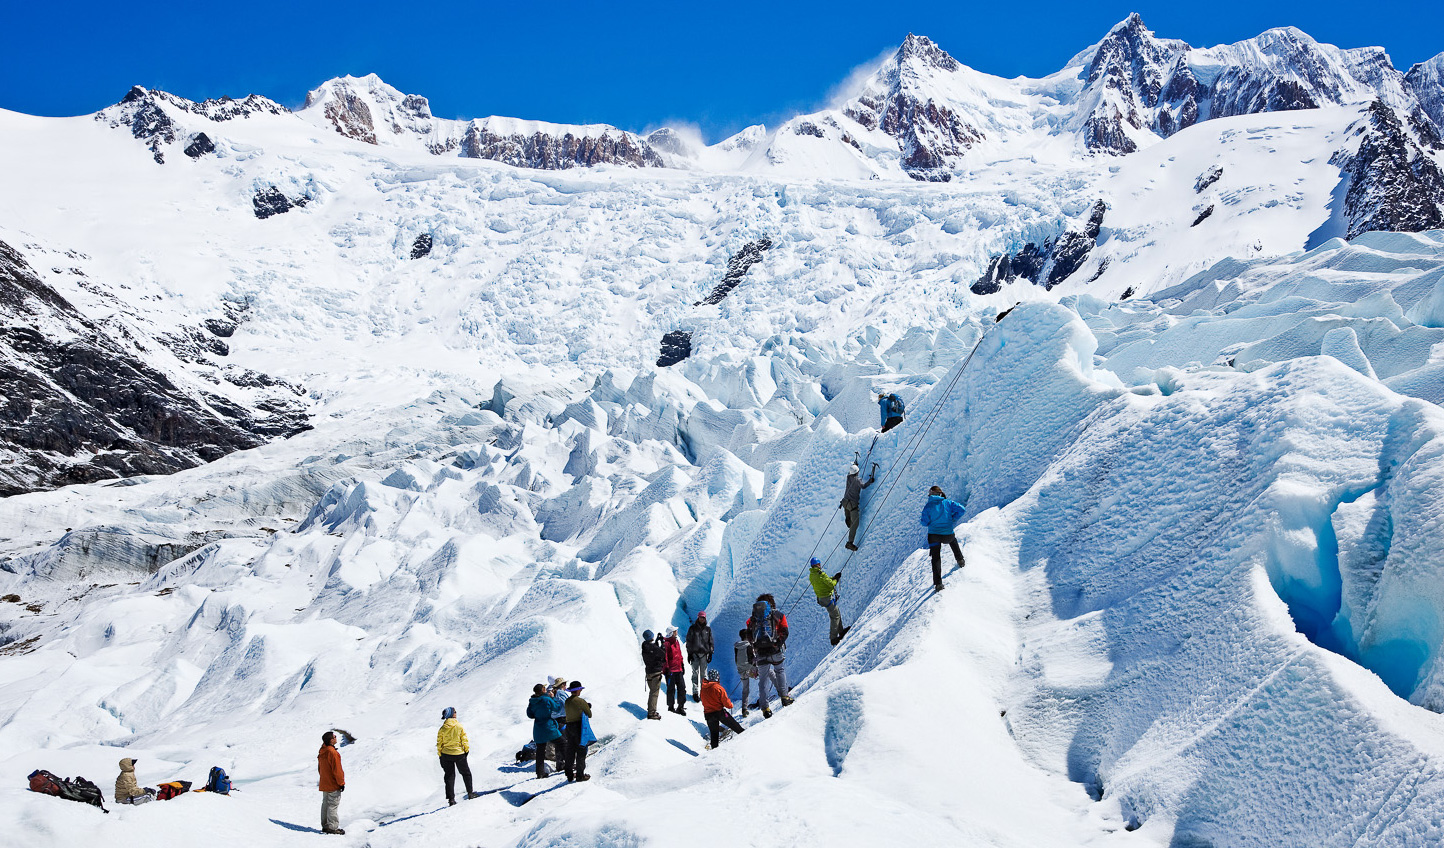 A place to challenge yourself, hike glaciers in Patagonia